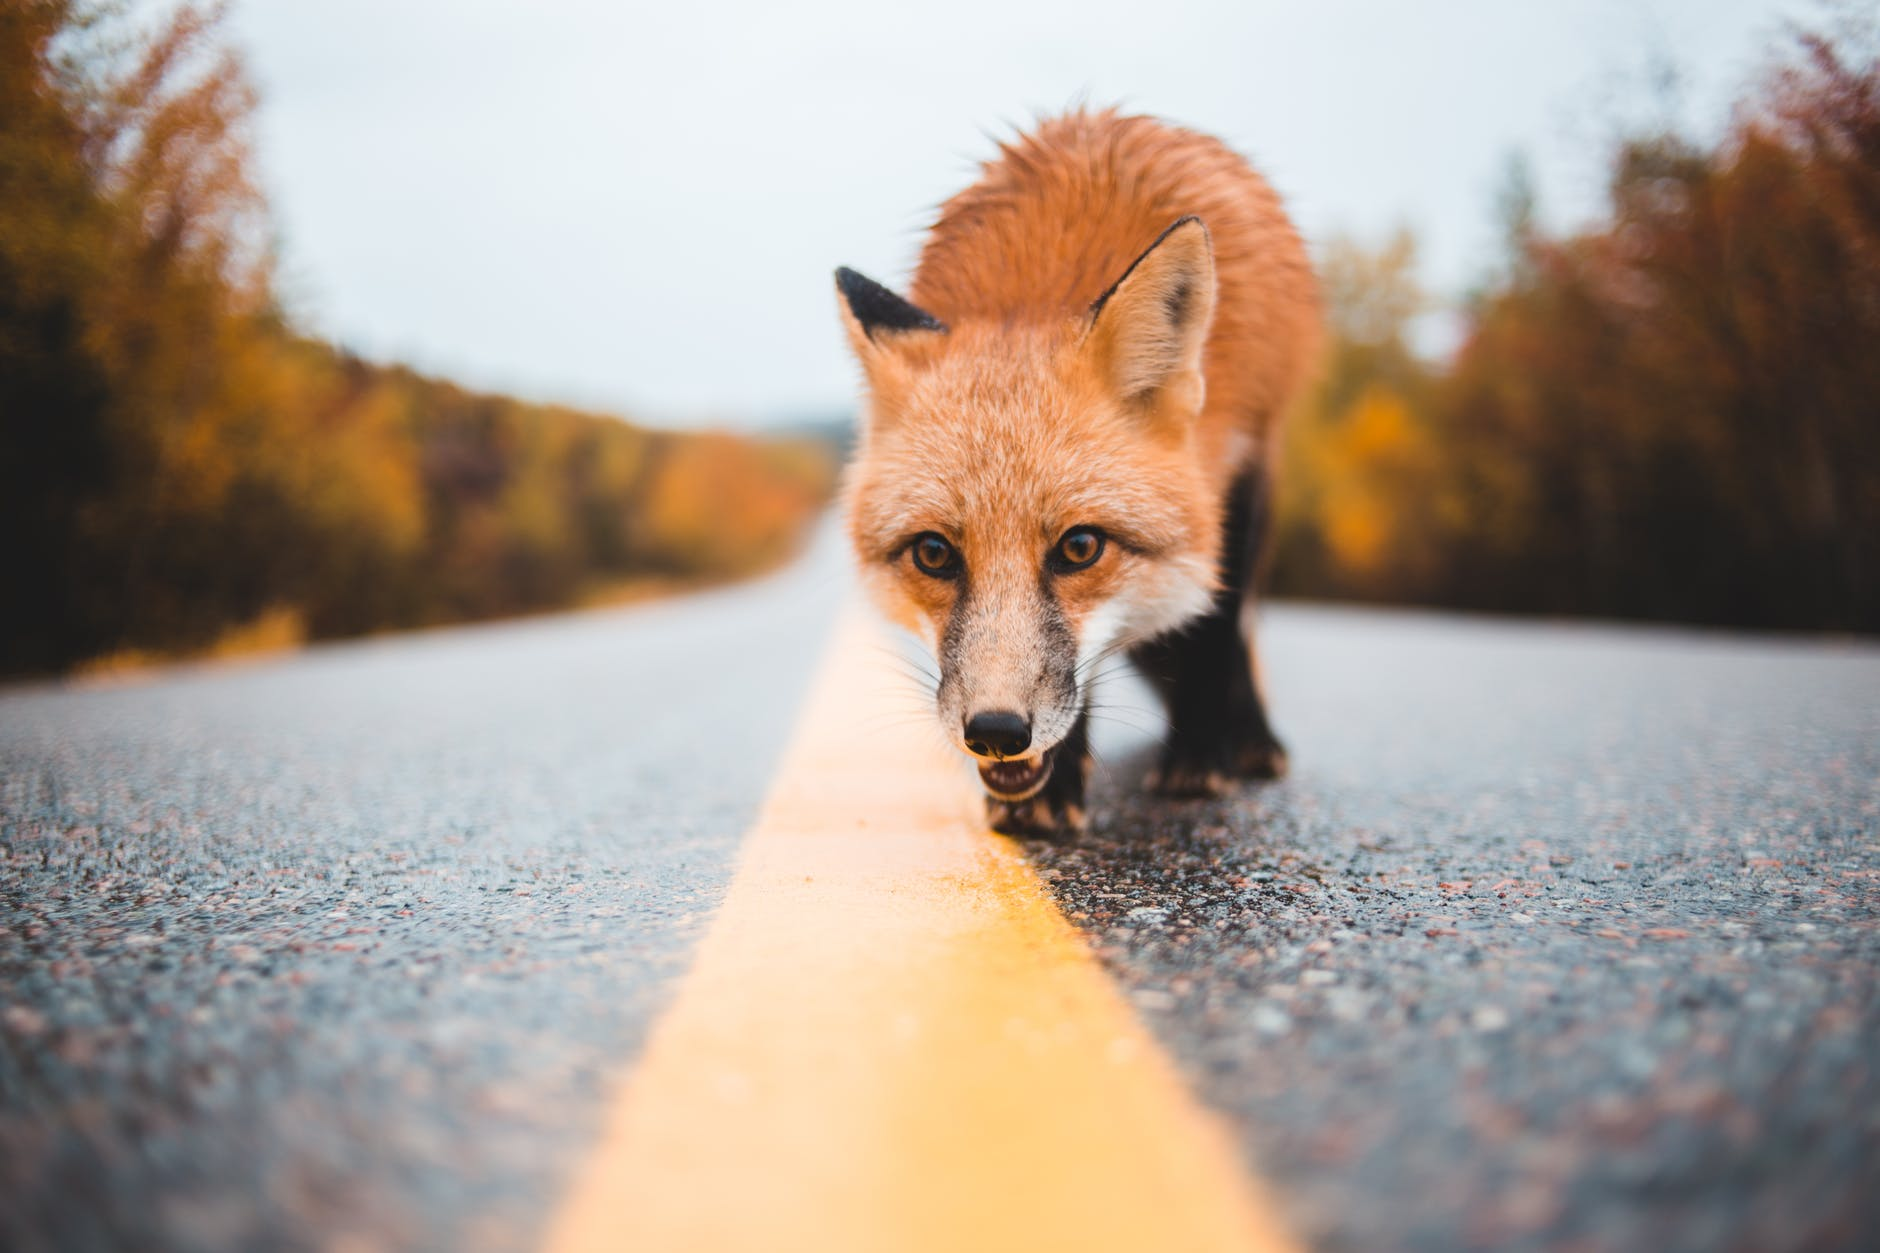 March of the Fox